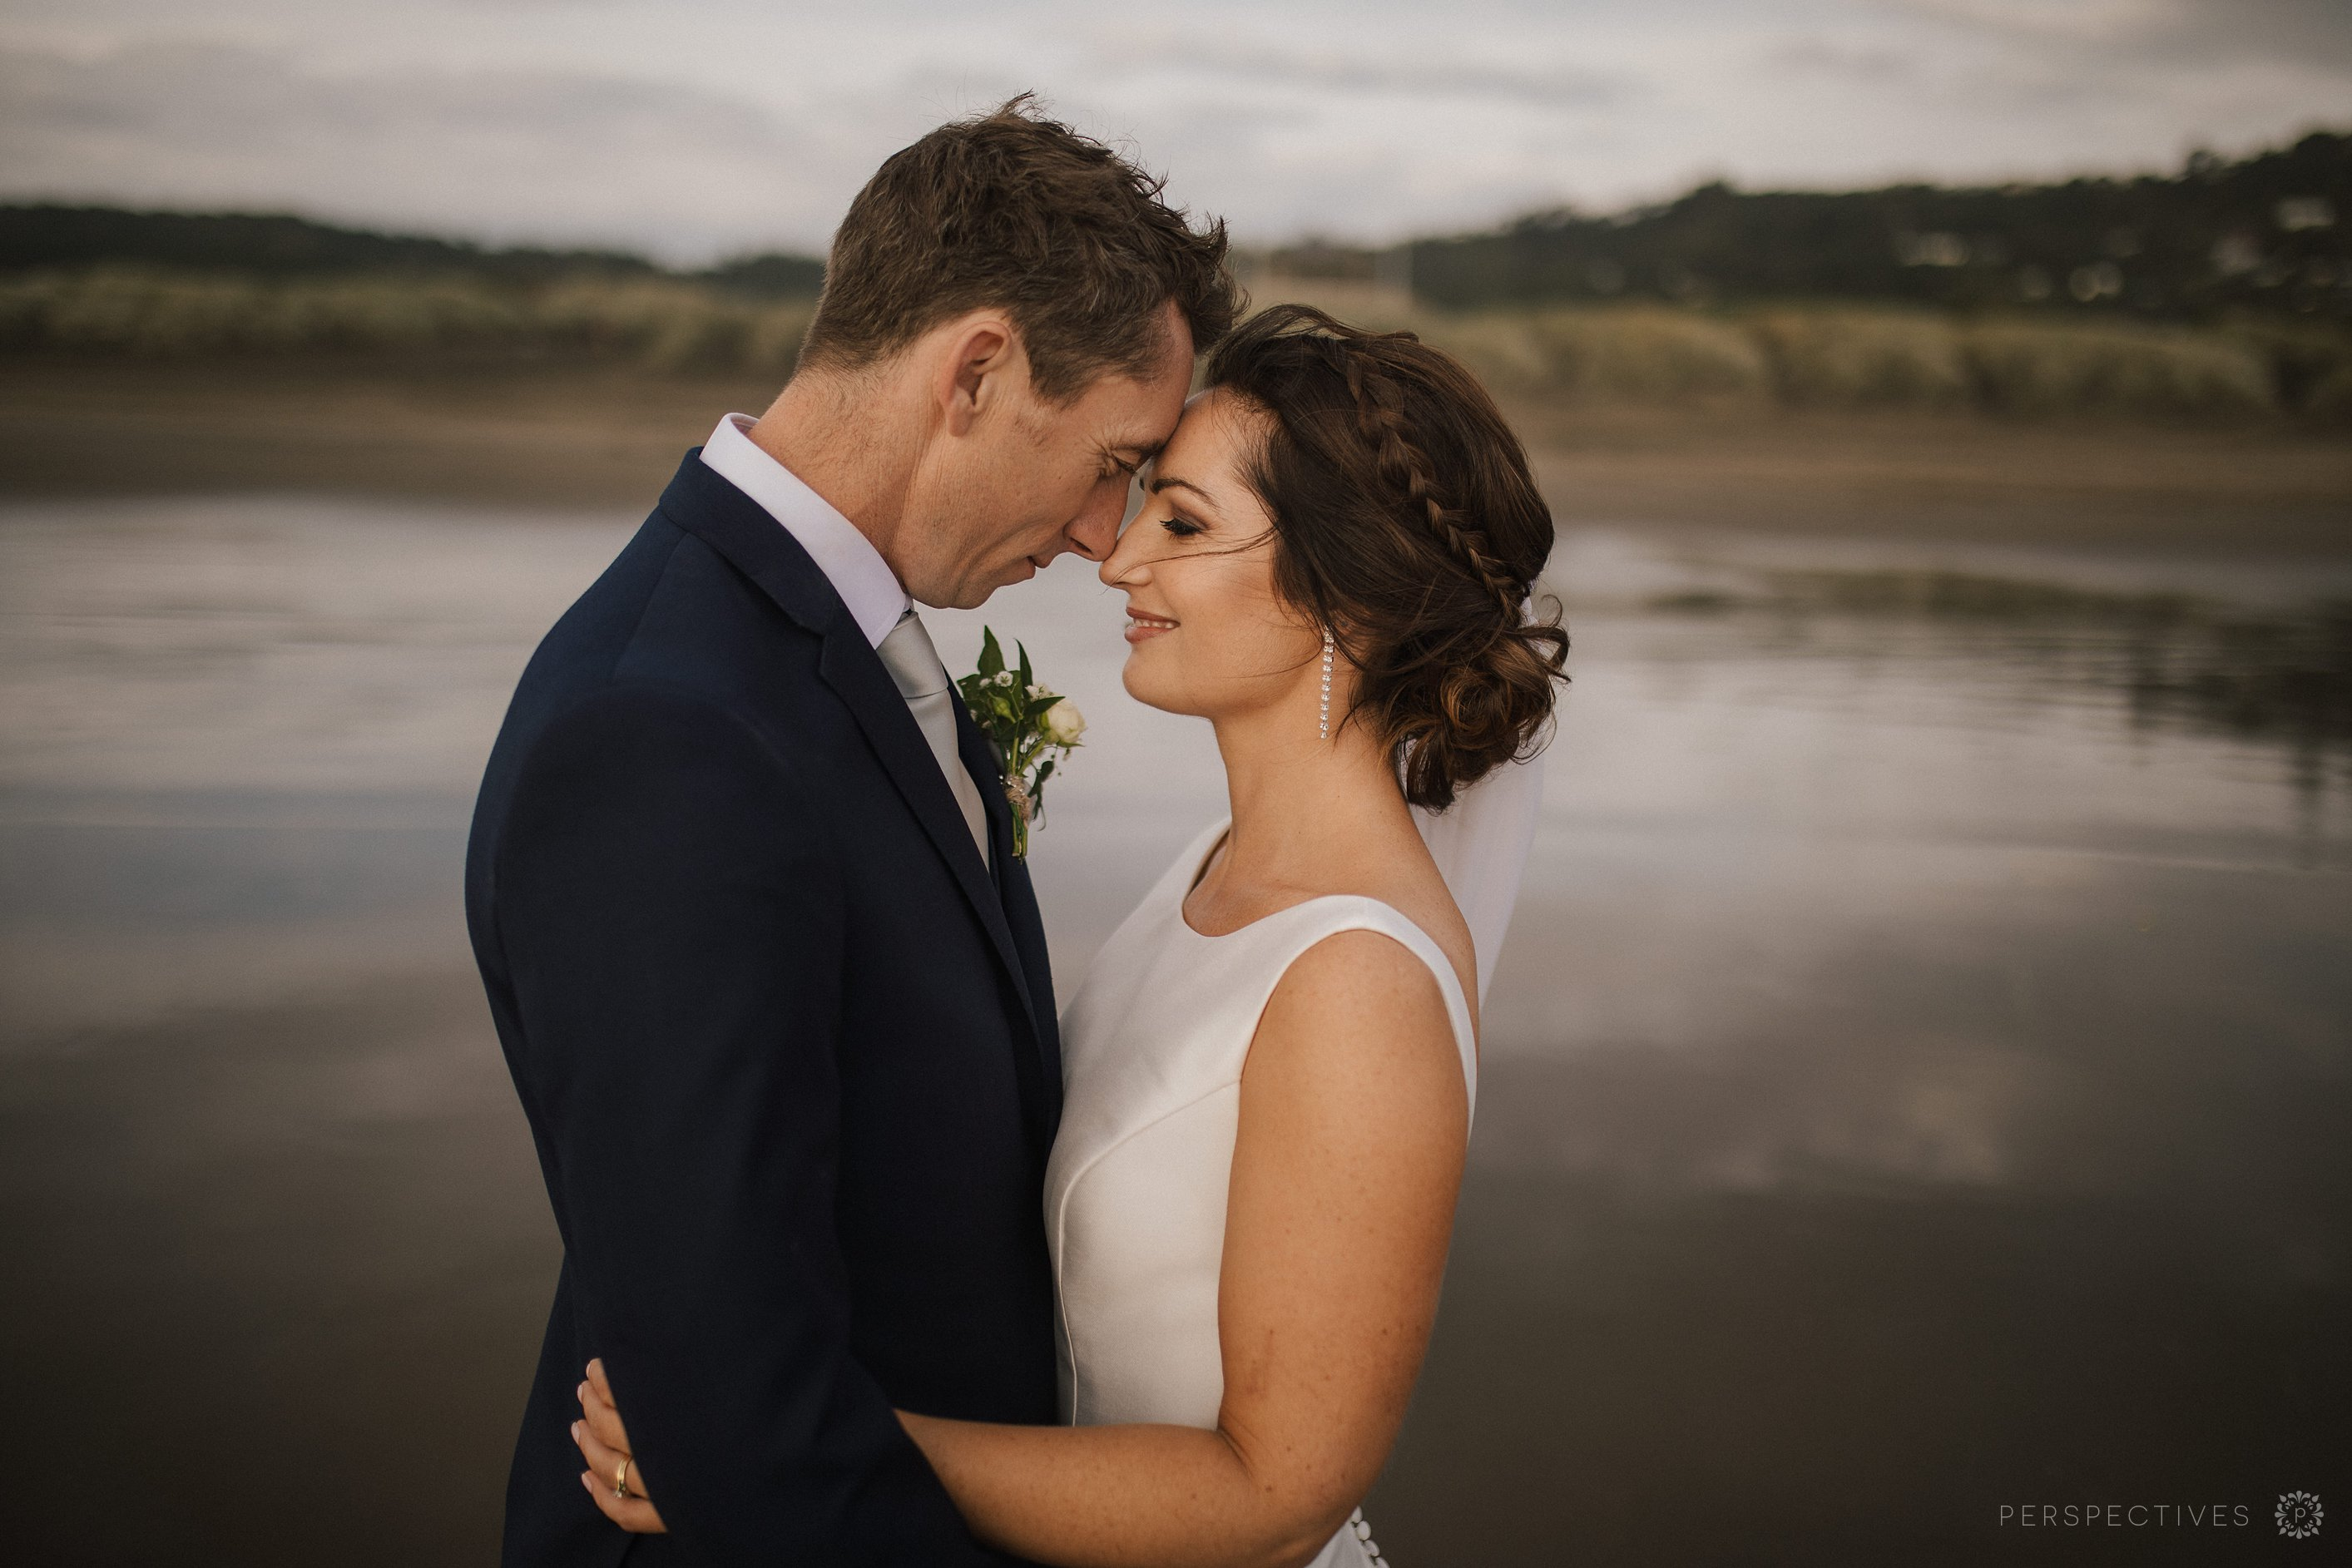 Muriwai beach wedding photos on sand with reflection